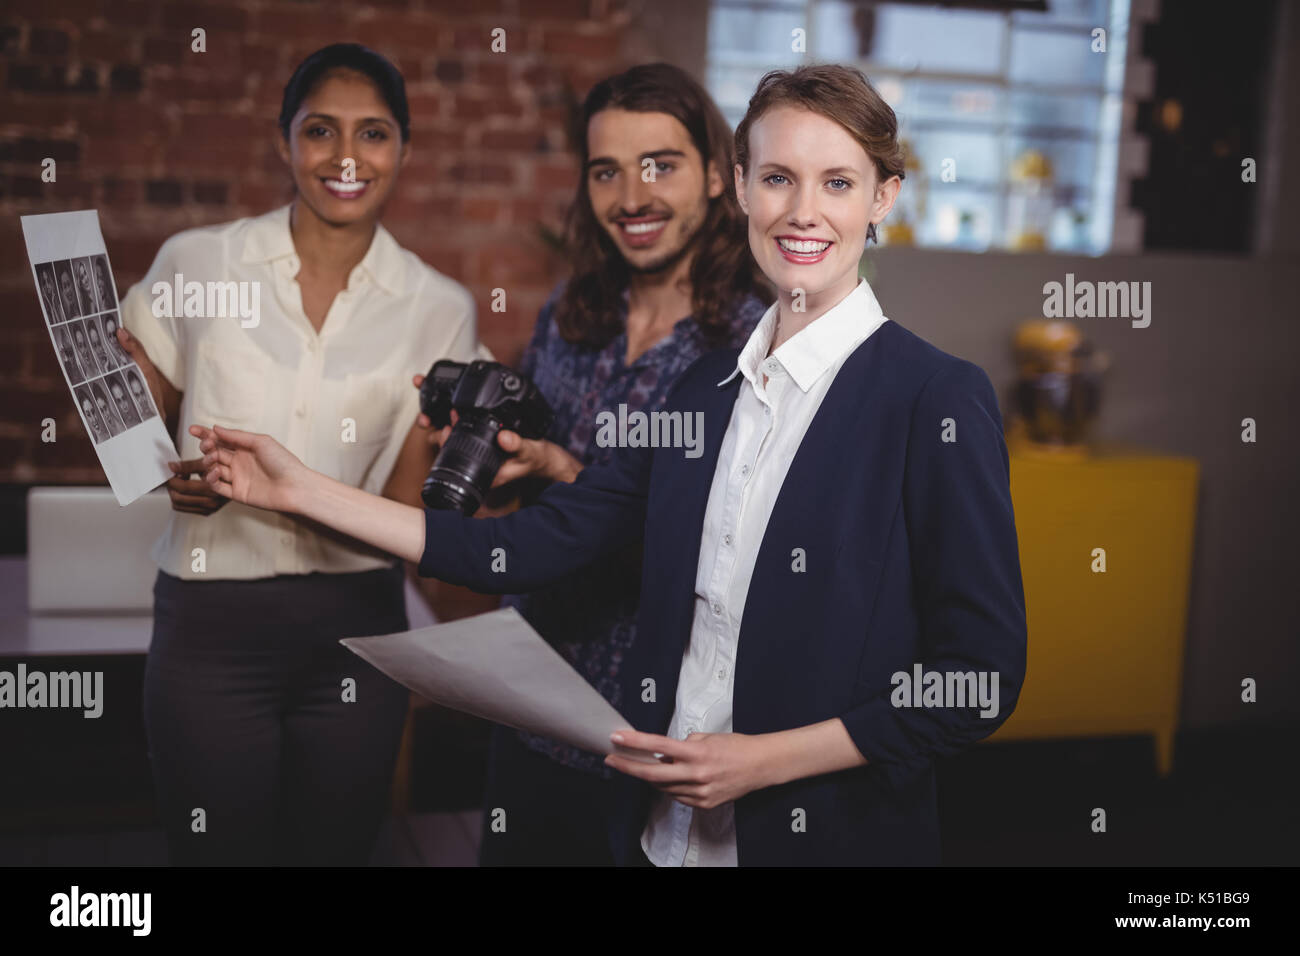 Portrait of smiling young creative team discussing collage at coffee shop - Stock Image